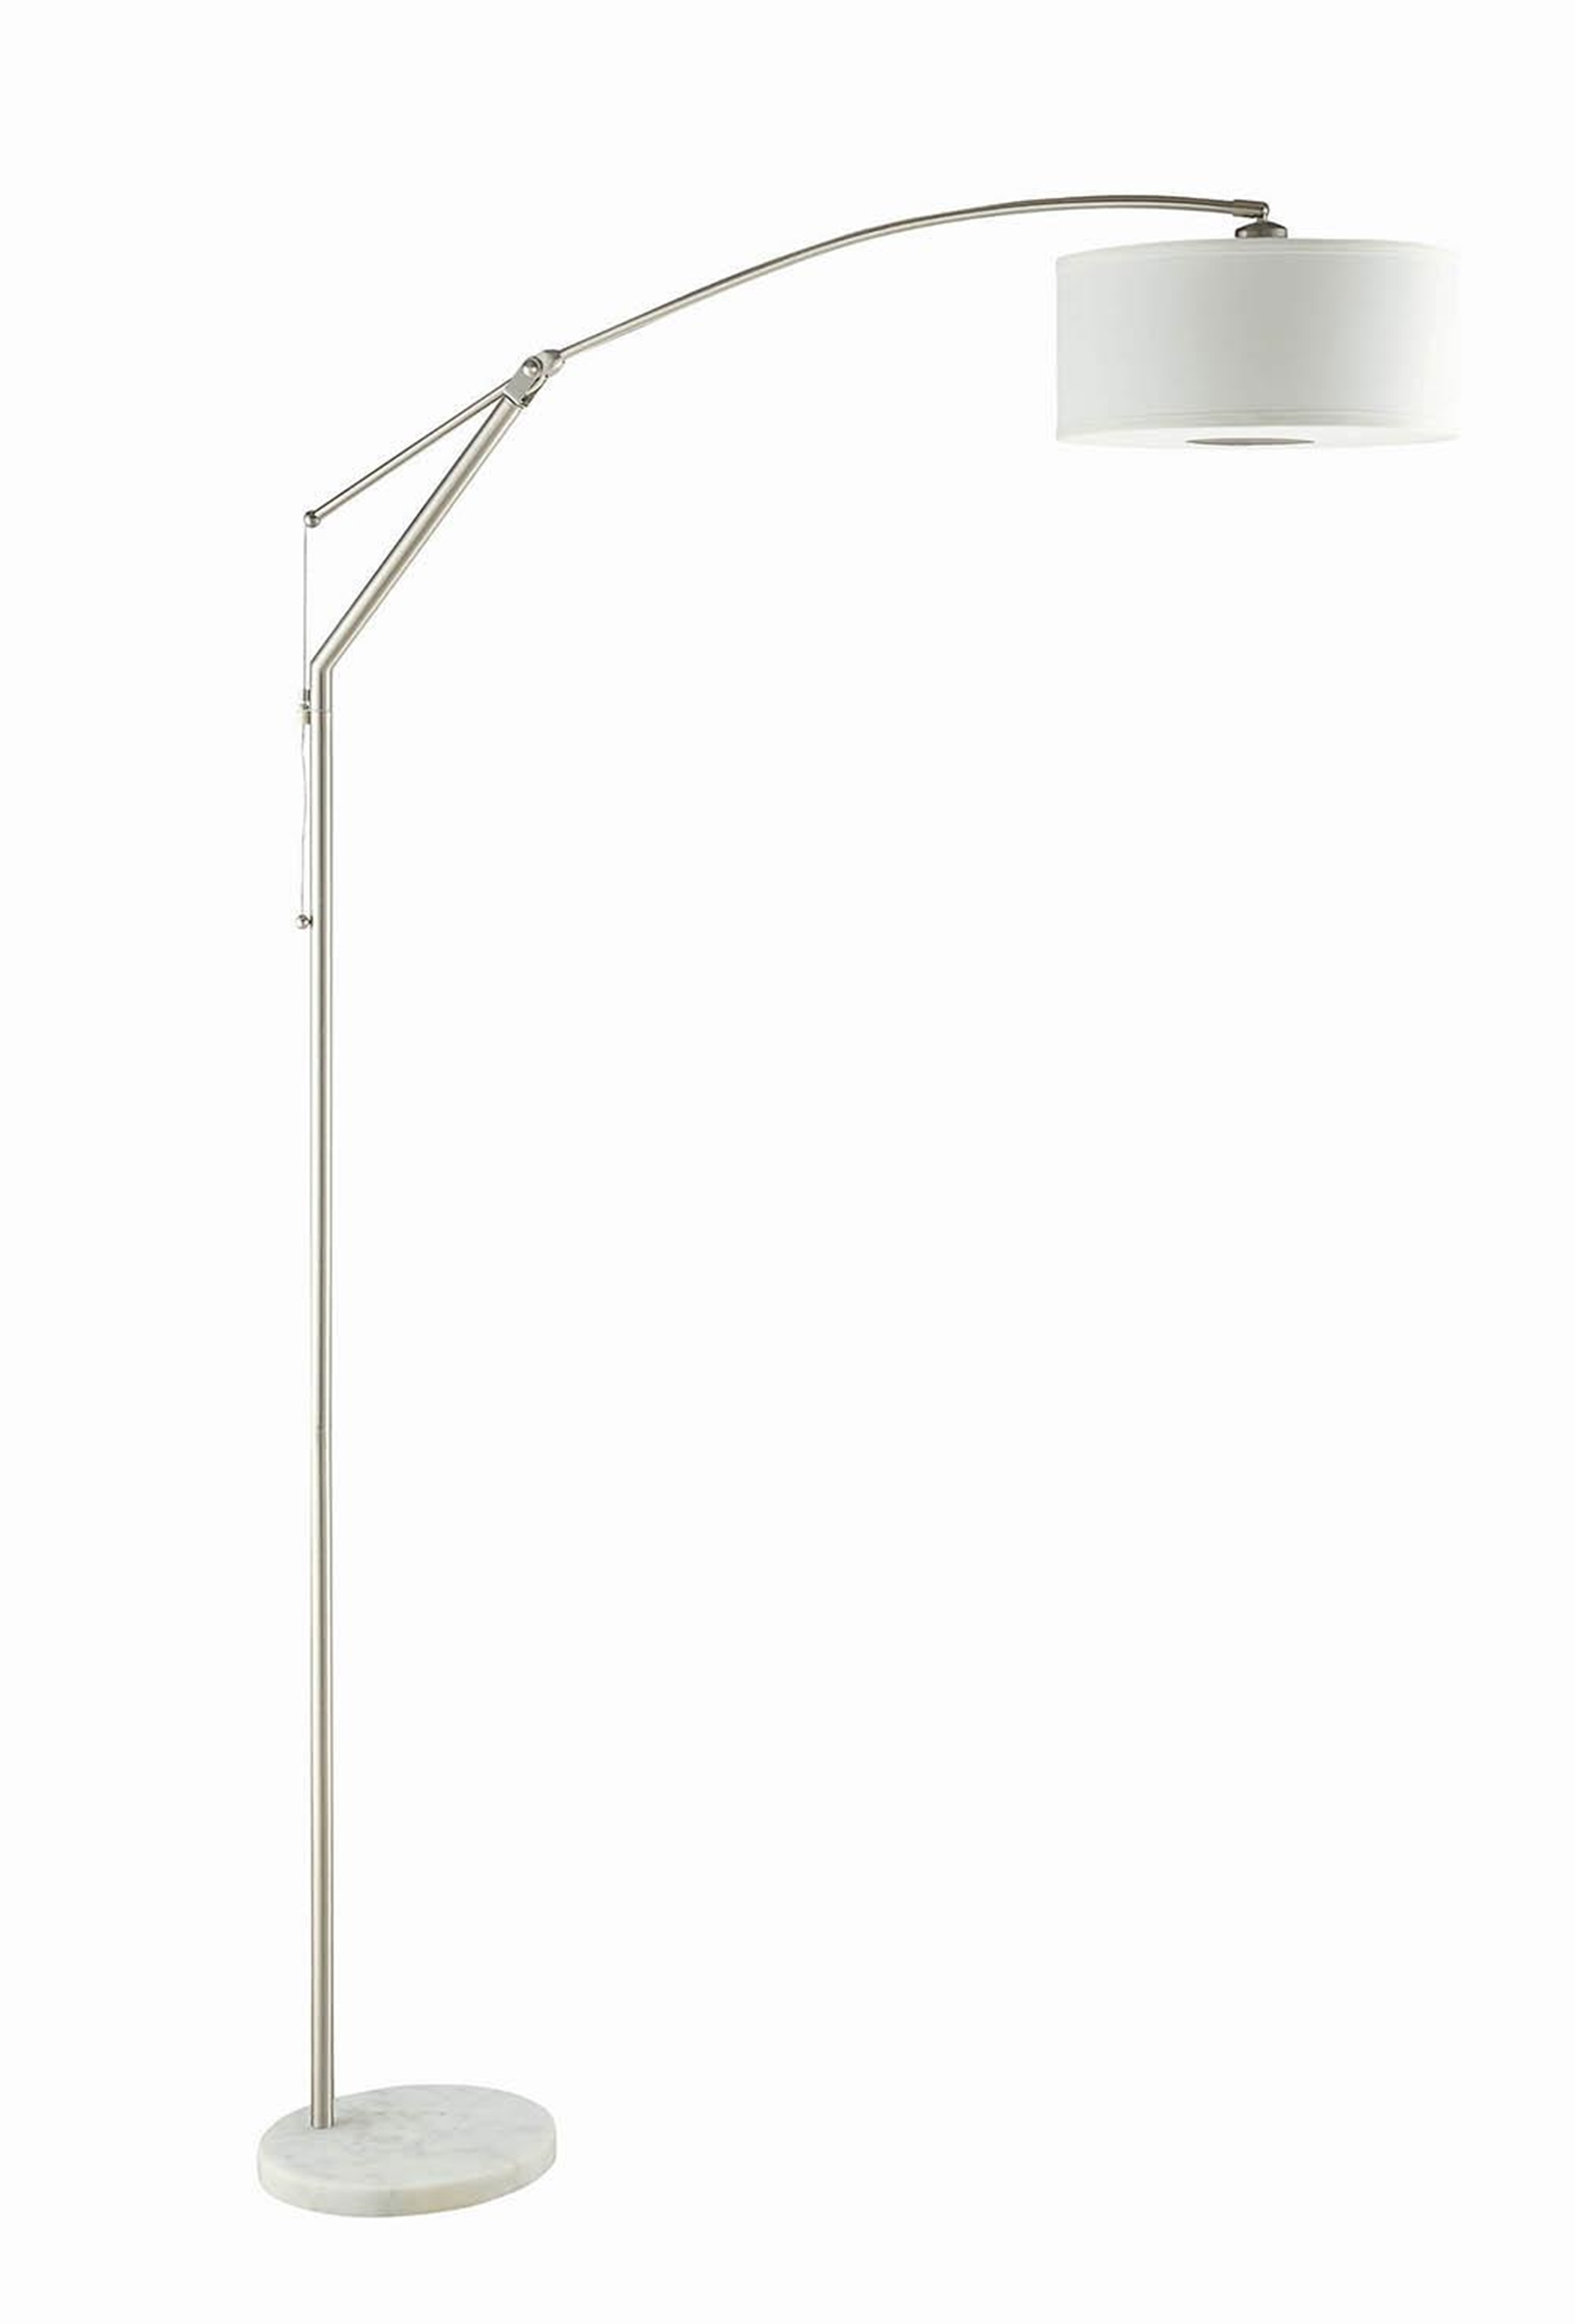 White and Chrome Floor Lamp